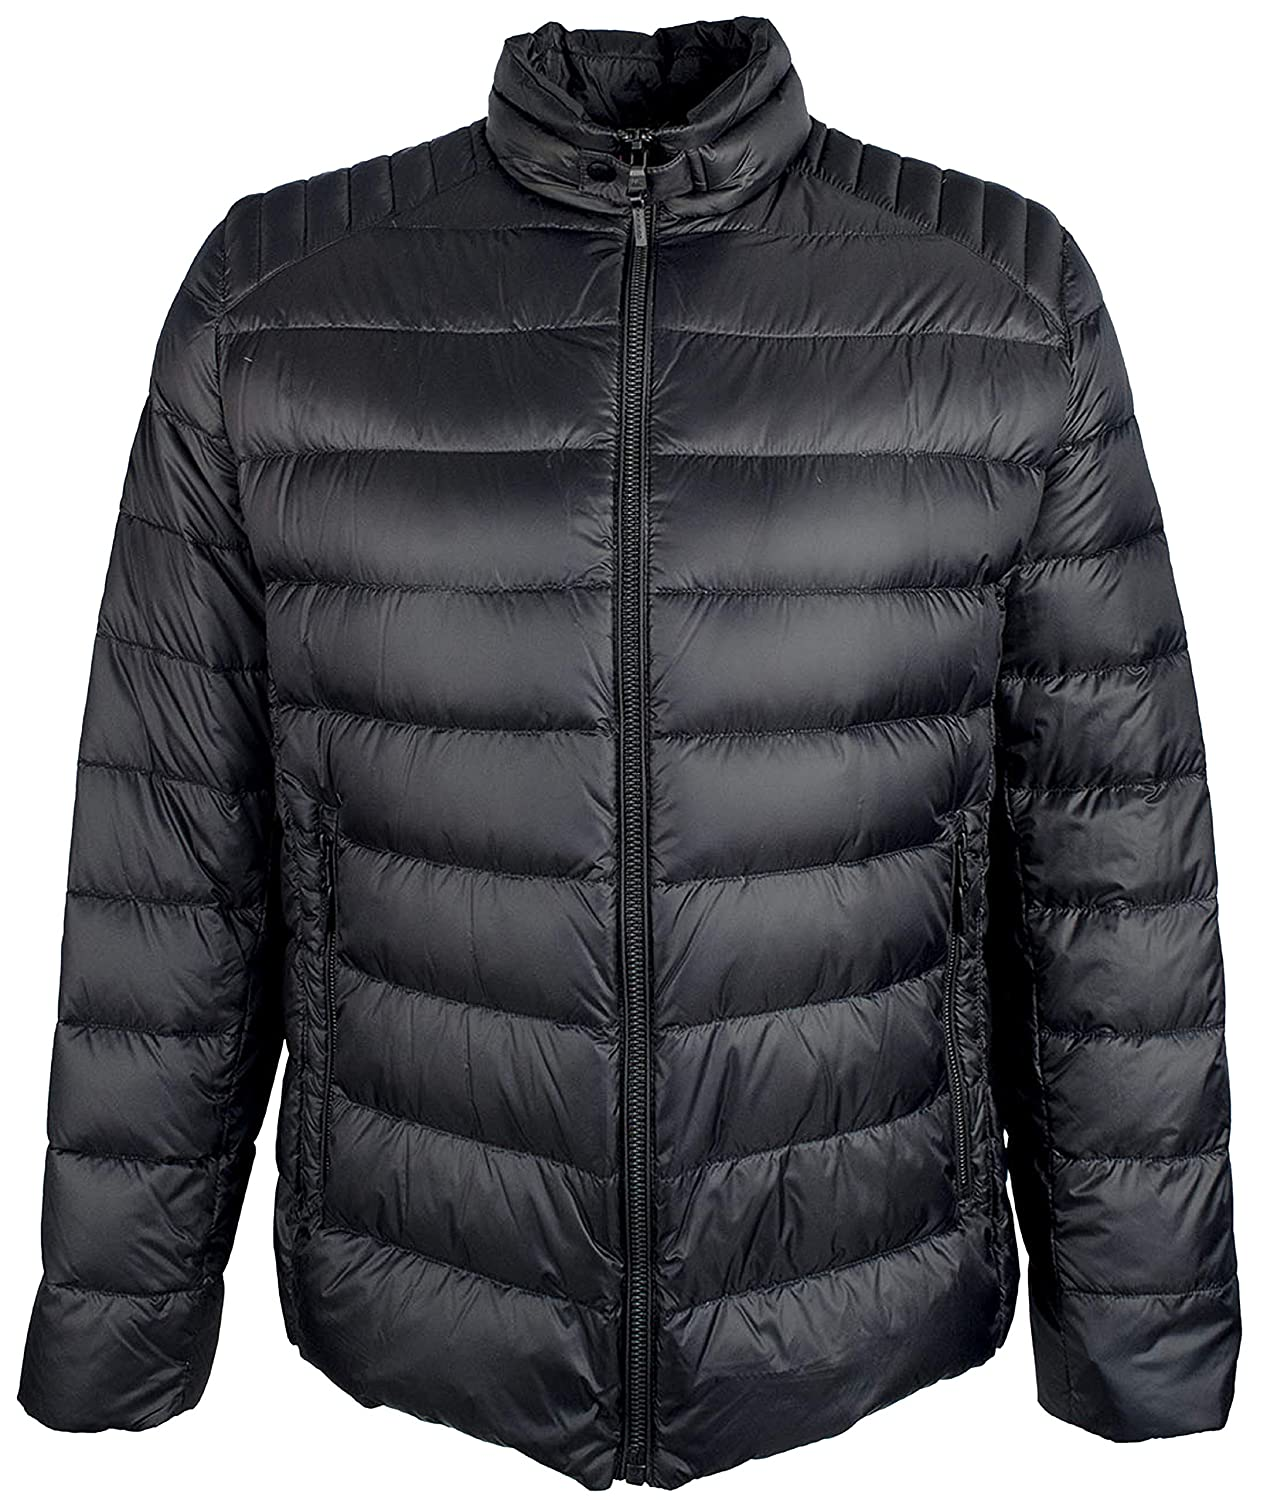 c2944f753 Amazon.com: Michael Kors Men's Big & Tall Packable Down Puffer Coat ...